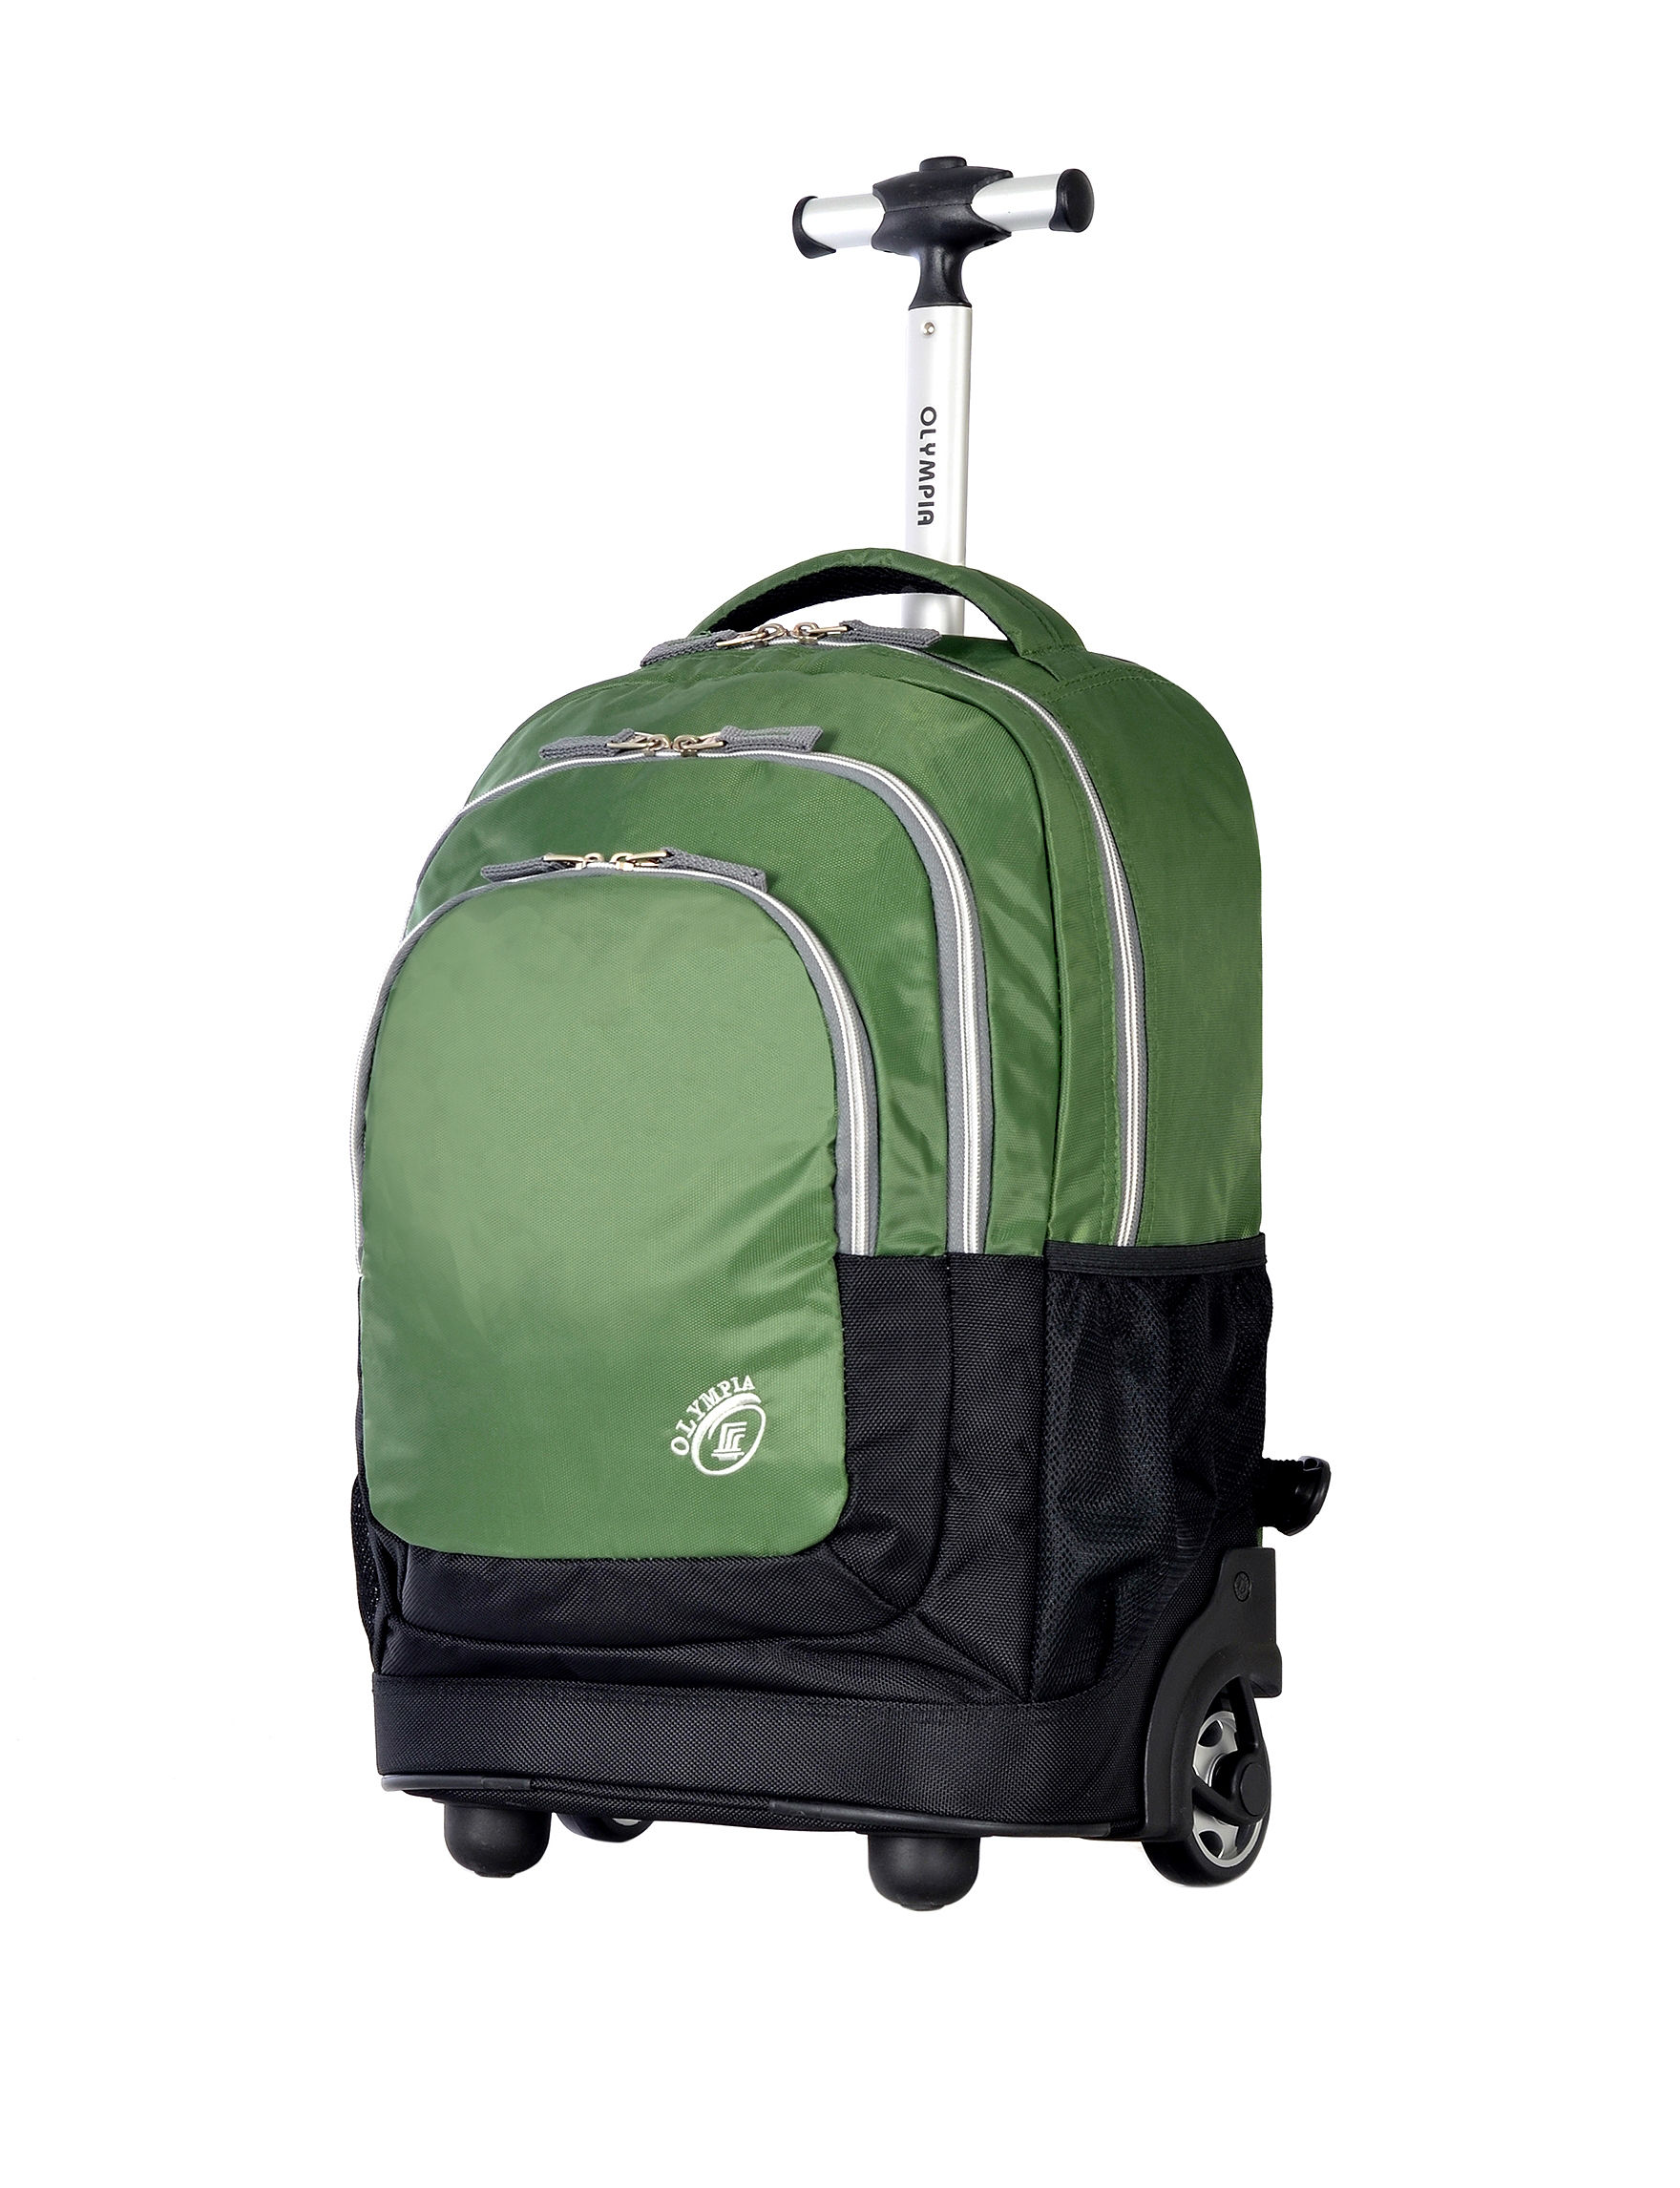 Olympia Green Upright Spinners